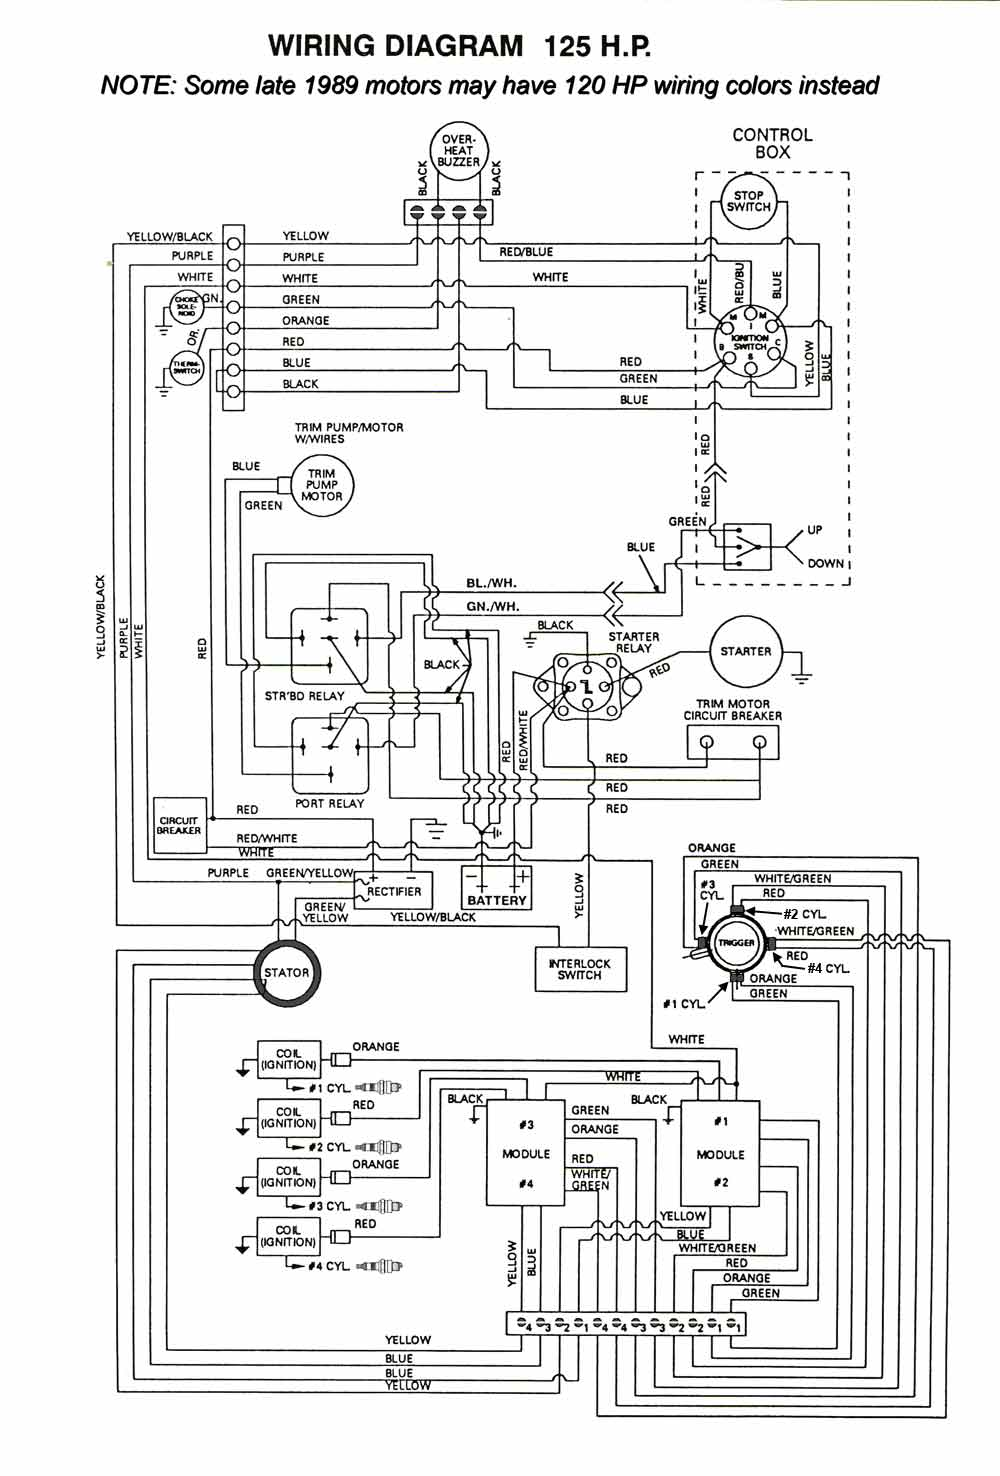 Boat Motor Wiring Data Diagram Marine Schematic Outboard Diagrams Library 2 Post Lift